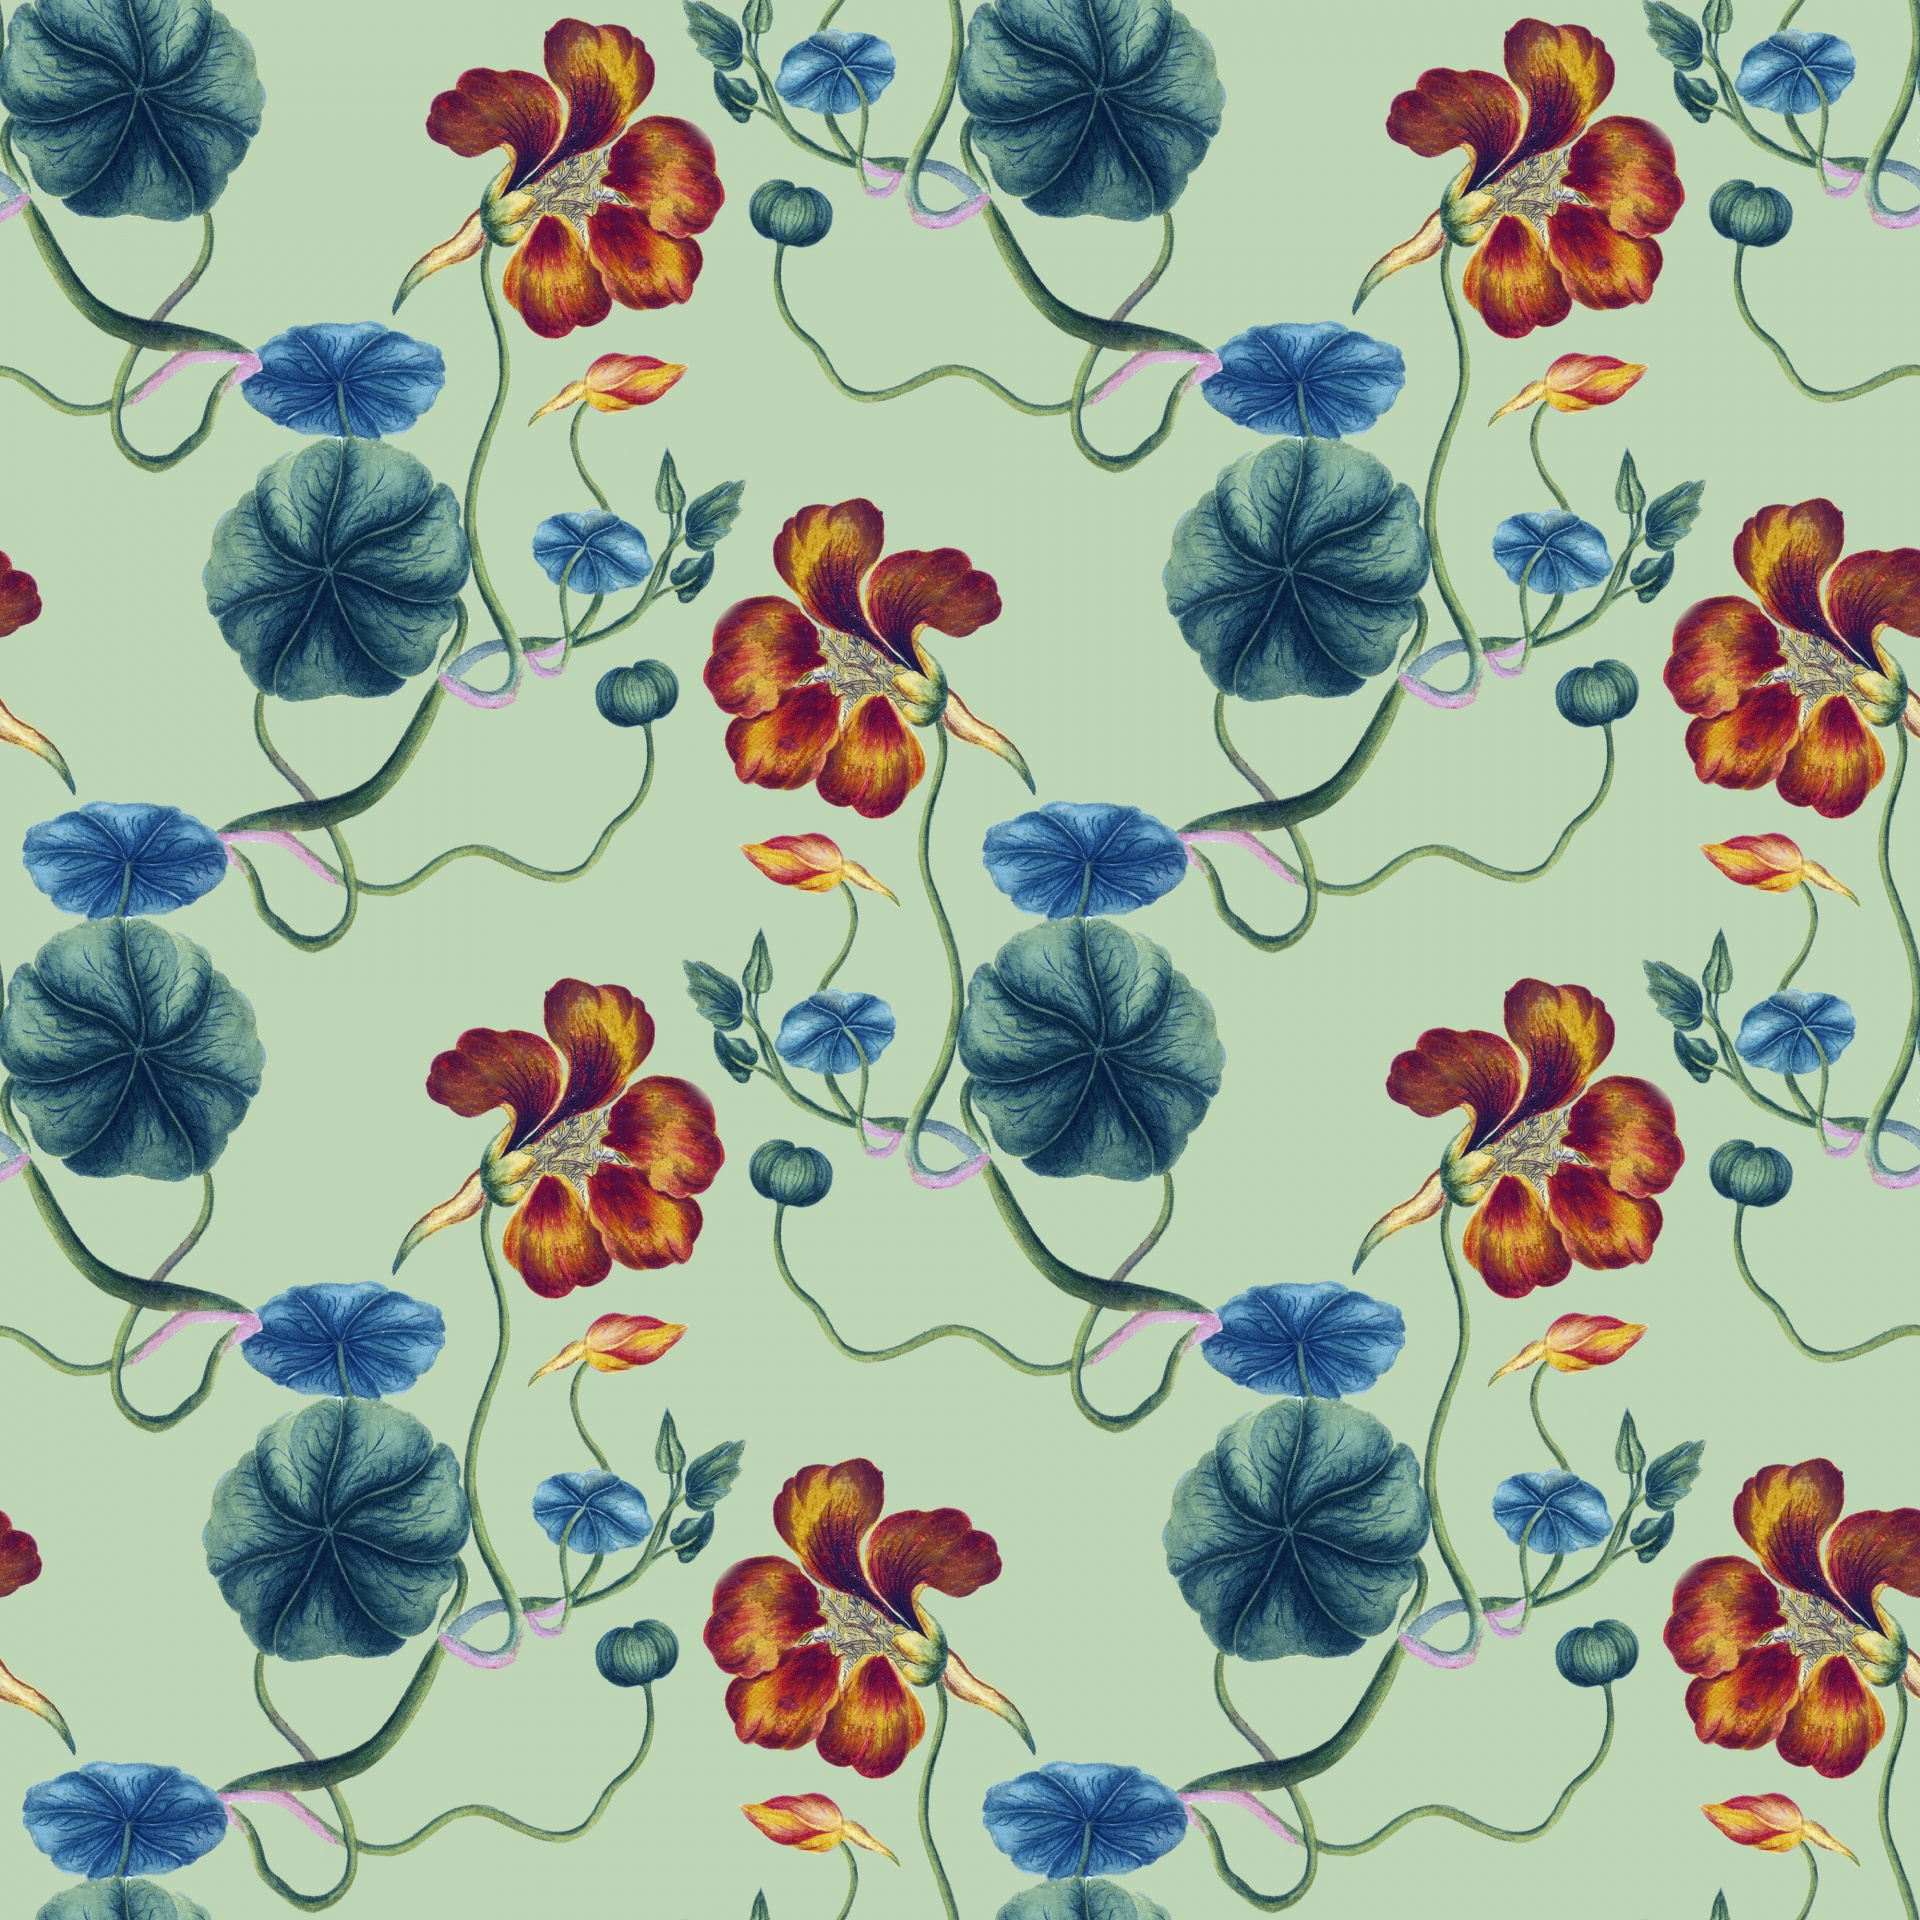 Floral Background Vintage Wallpaper Seamless Free Image From